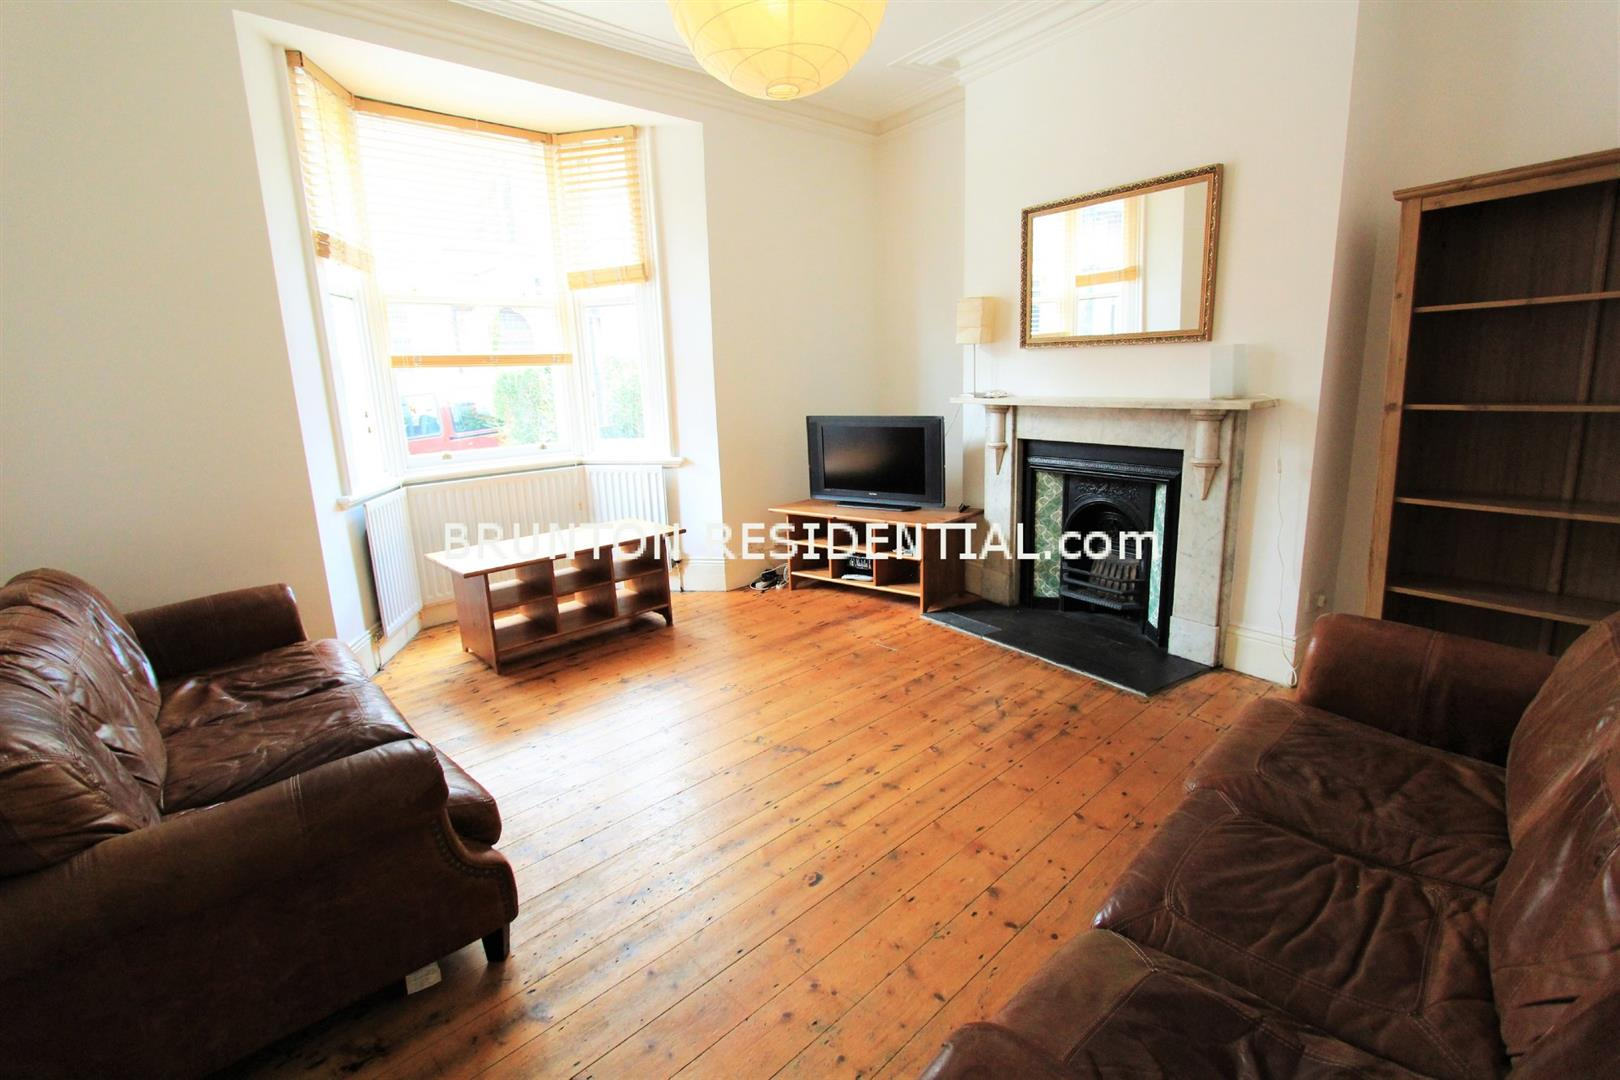 6 bed terraced house to rent in Spital Tongues, NE2 4AH  - Property Image 1